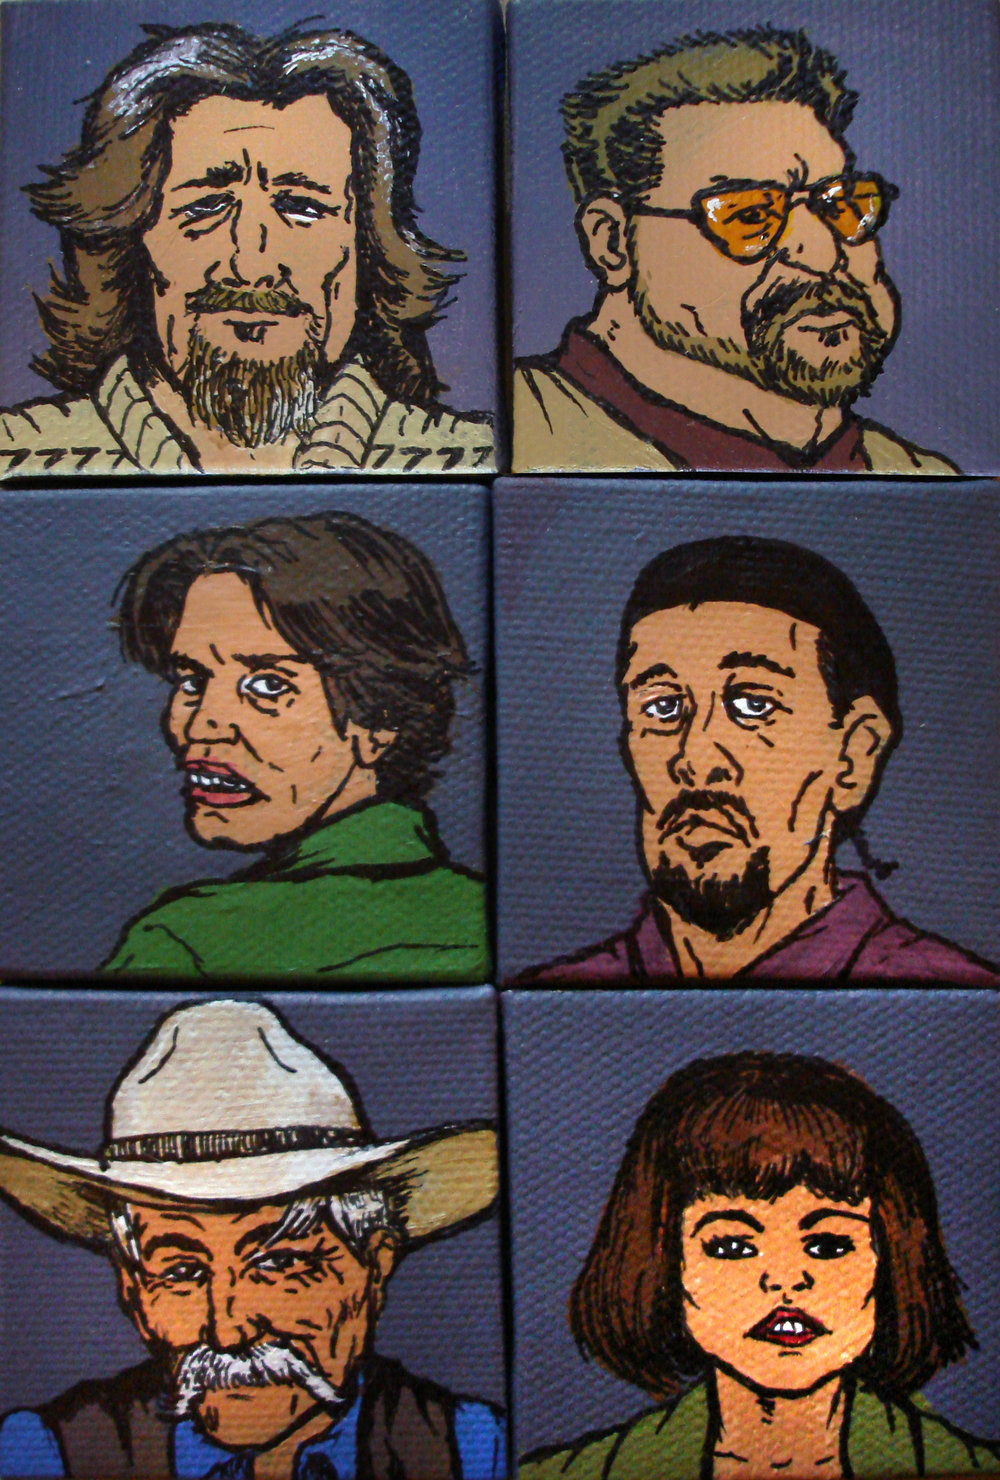 "The Big Lebowski one-of-a-kind set of 2"" x 2"" miniature acrylic paintings."